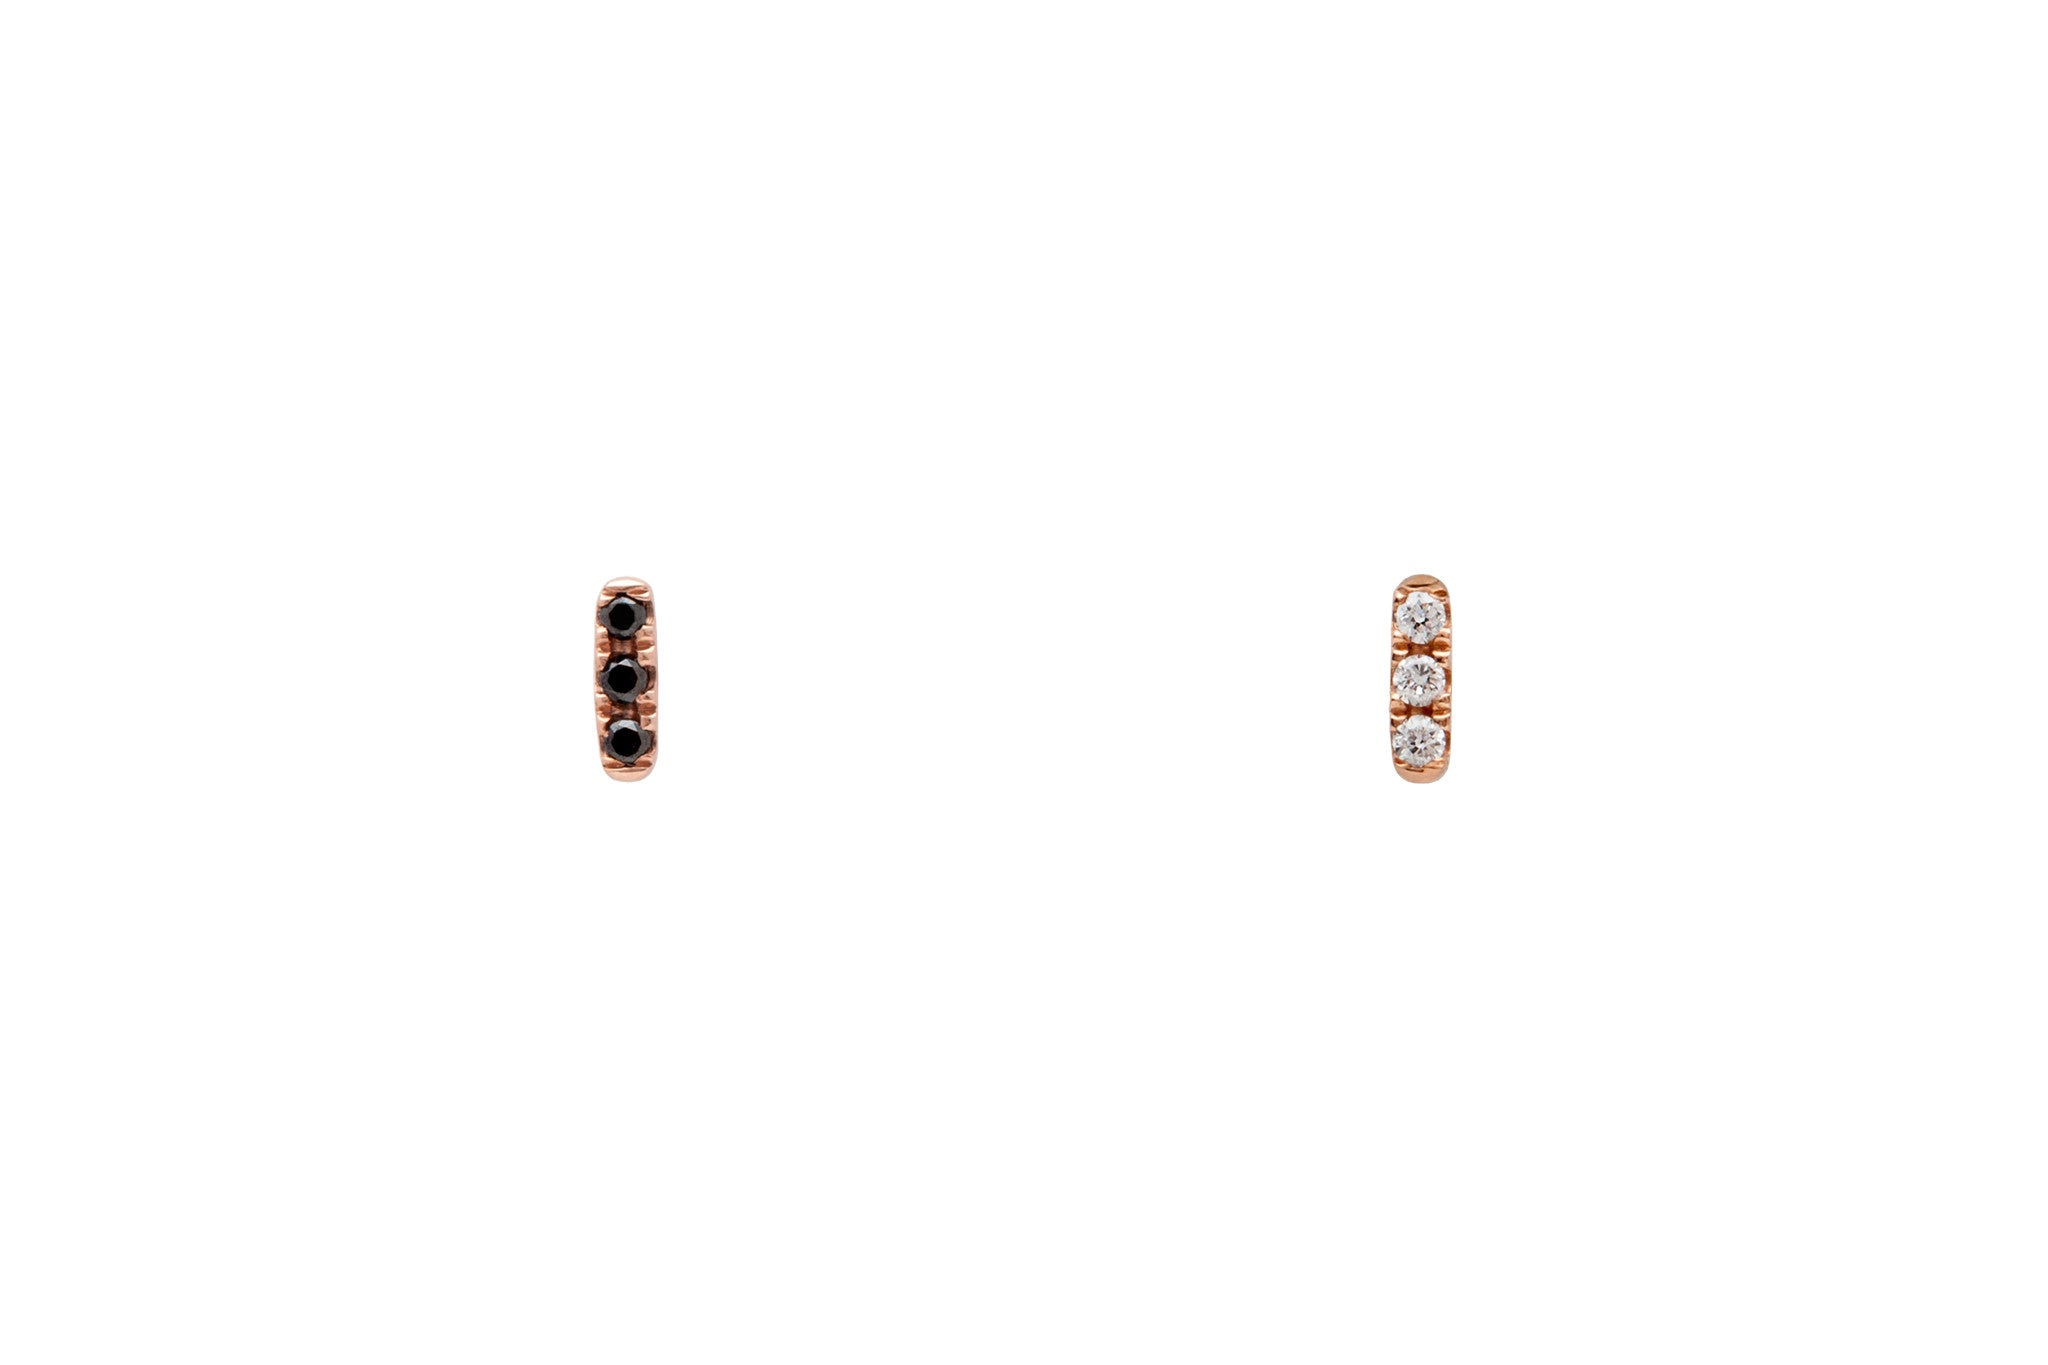 Mismatched 14k Rose Gold Tiny Diamond Bar Earrings E2318 E2319